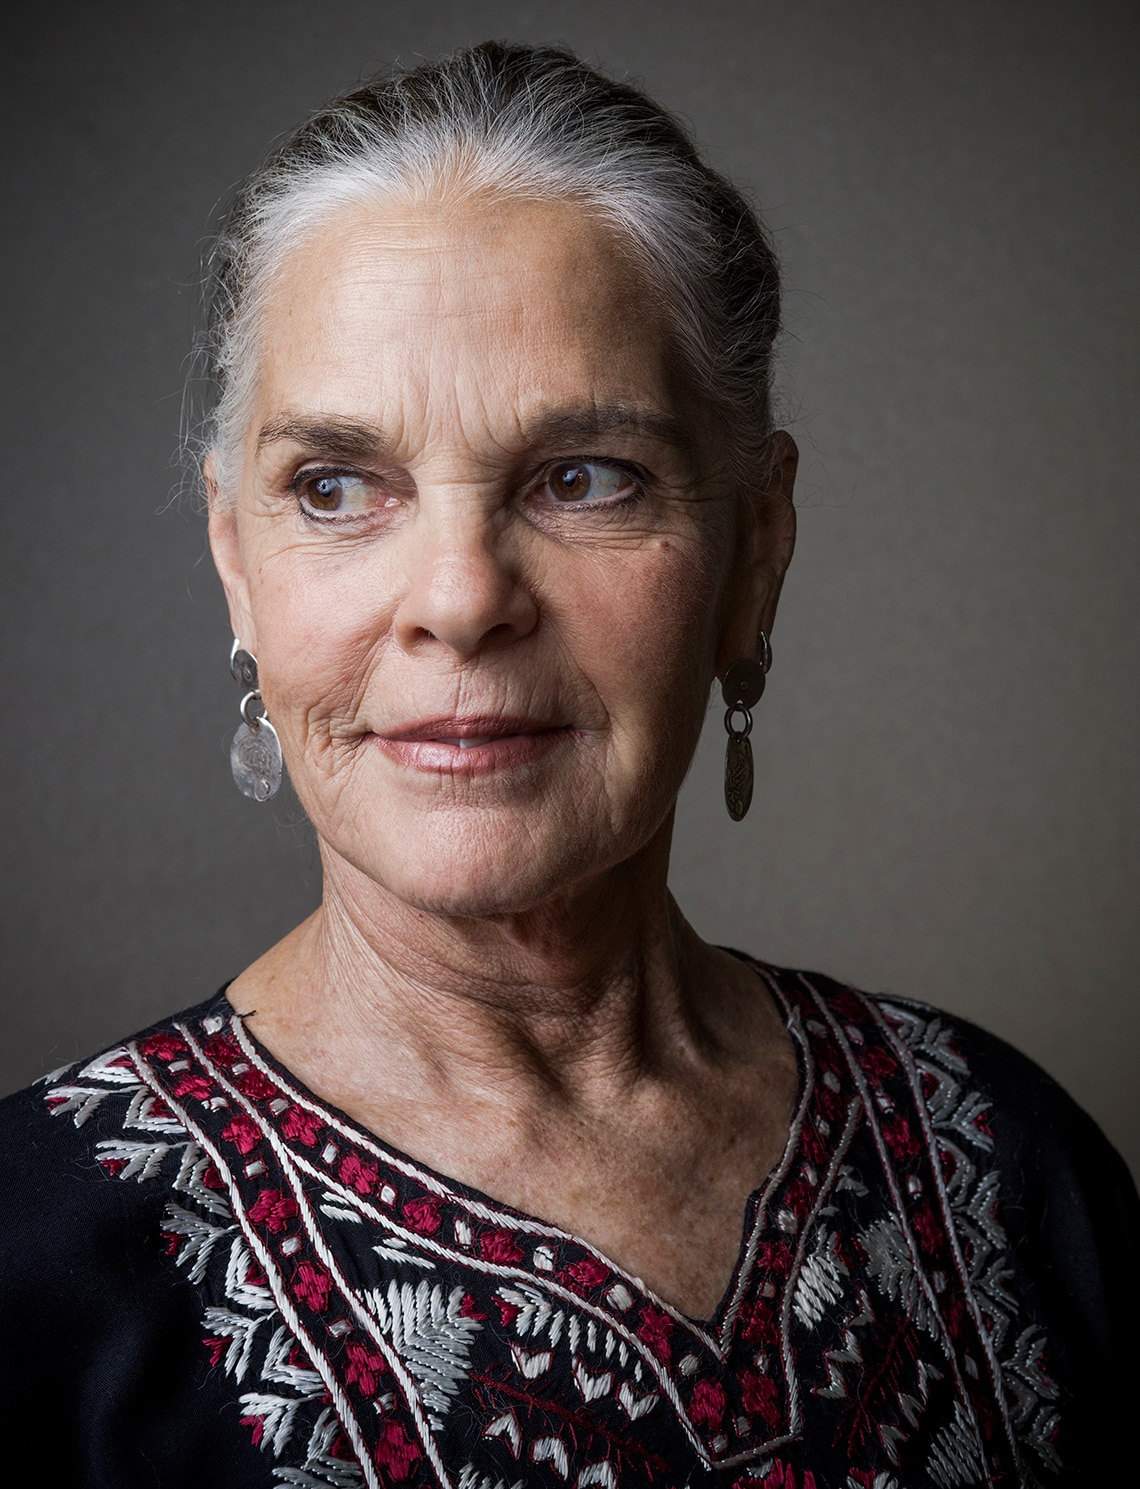 Ali MacGraw American Actress, Model, Author, Activist